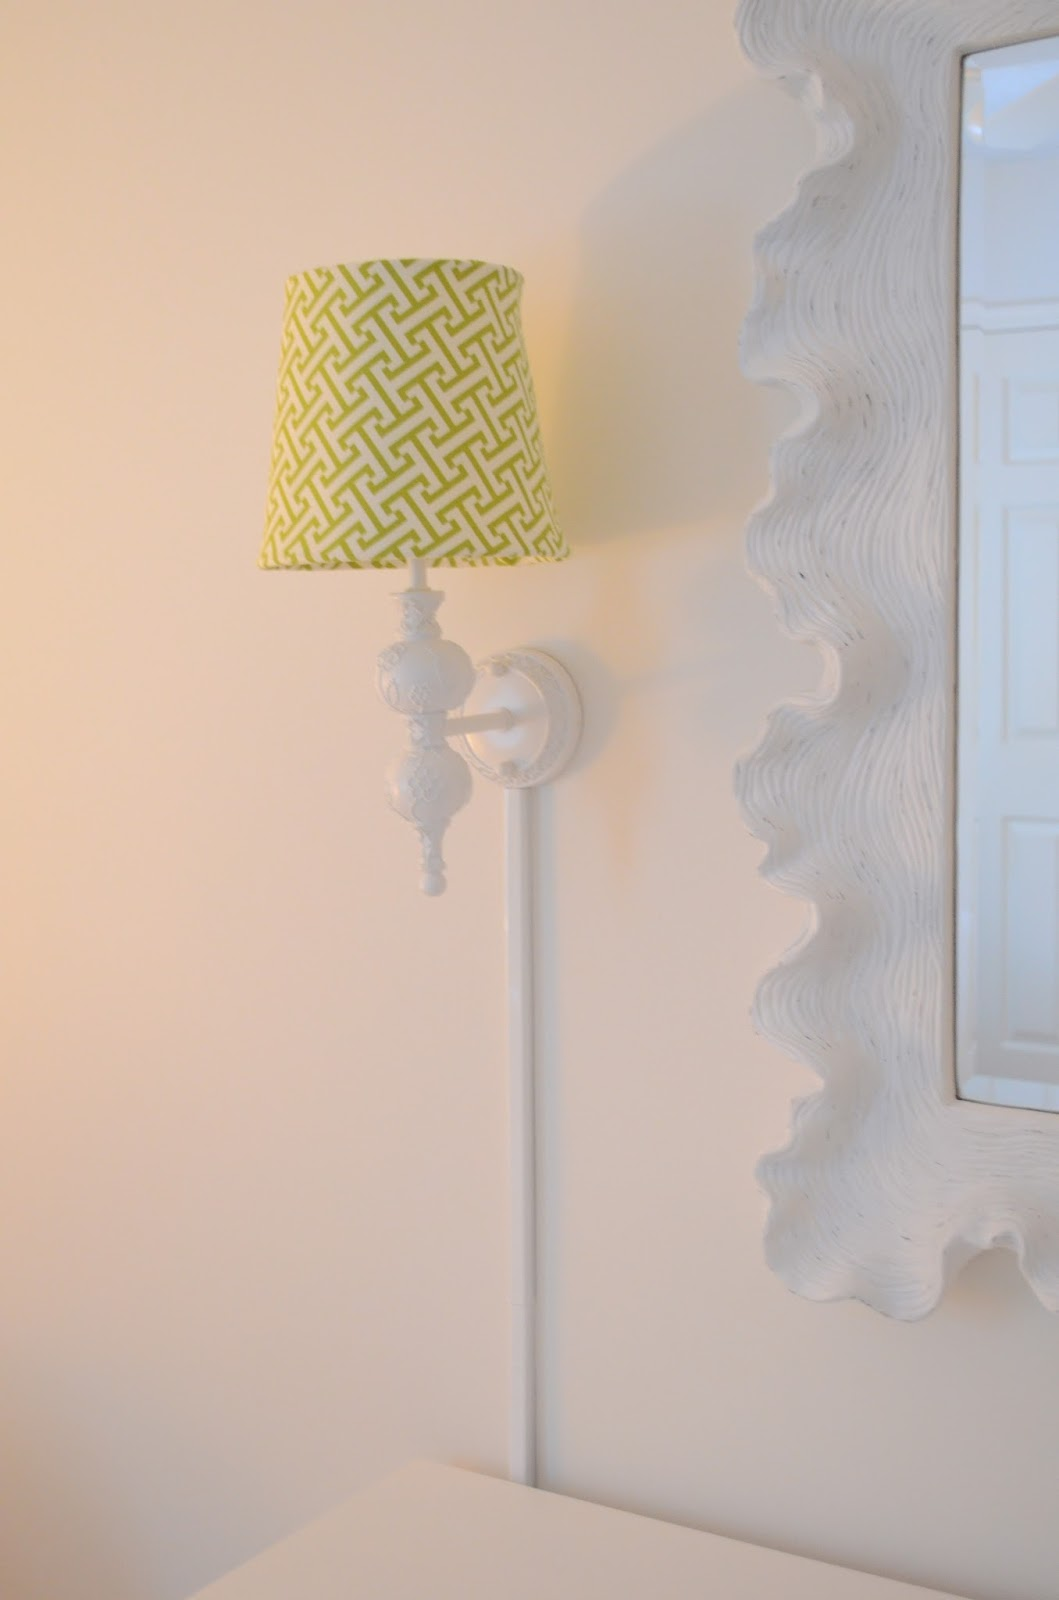 Wall Sconces With Cord Covers : Sconces With Cords Home Decoration Club